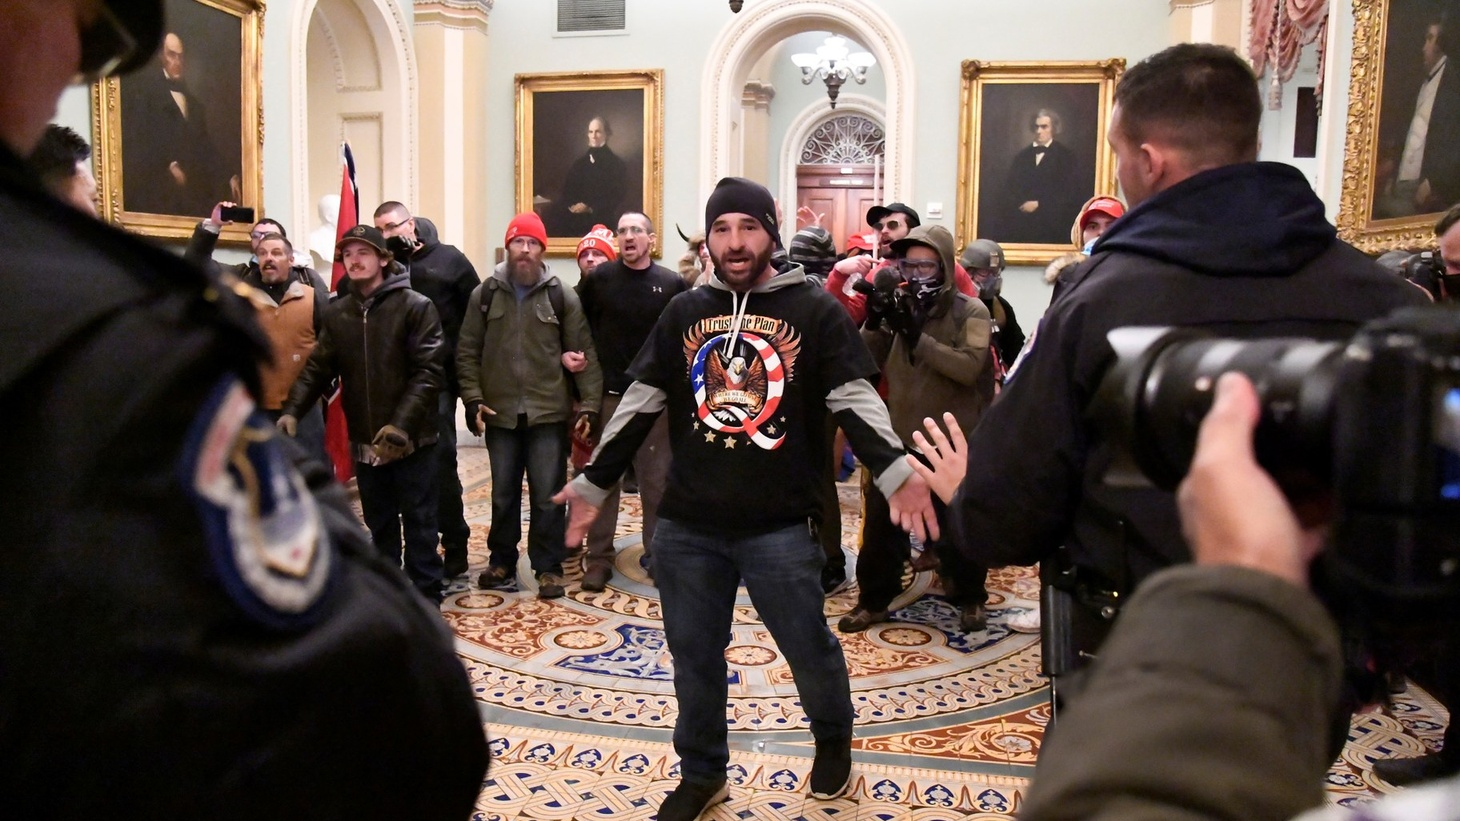 A supporter of President Donald Trump confronts police as extremists demonstrate on the second floor of the U.S. Capitol near the entrance to the Senate after breaching security defenses, in Washington, U.S., January 6, 2021.